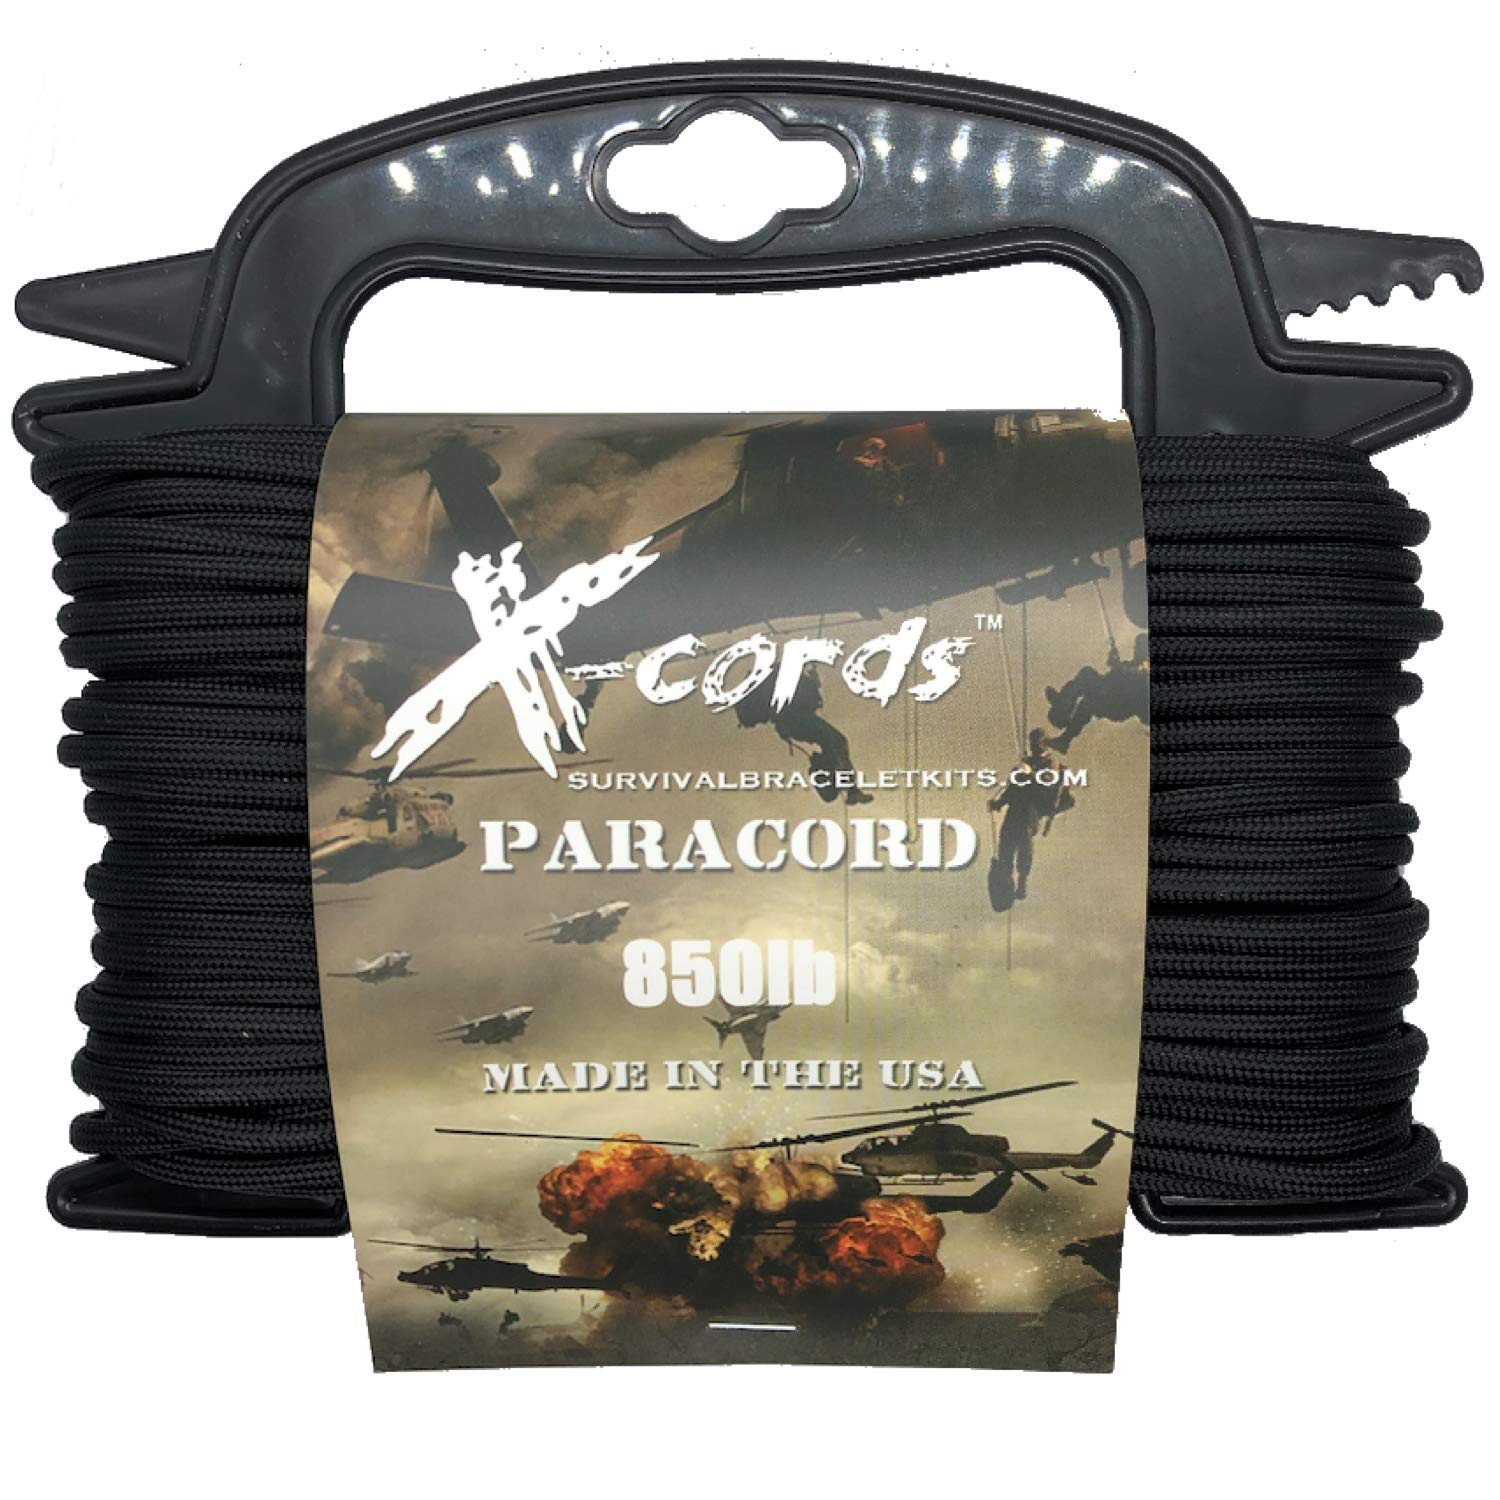 X-CORDS Paracord 850 Lb Stronger Than 550 and 750 Made by Us Government Certified Contractor (100' Black ON Spool)